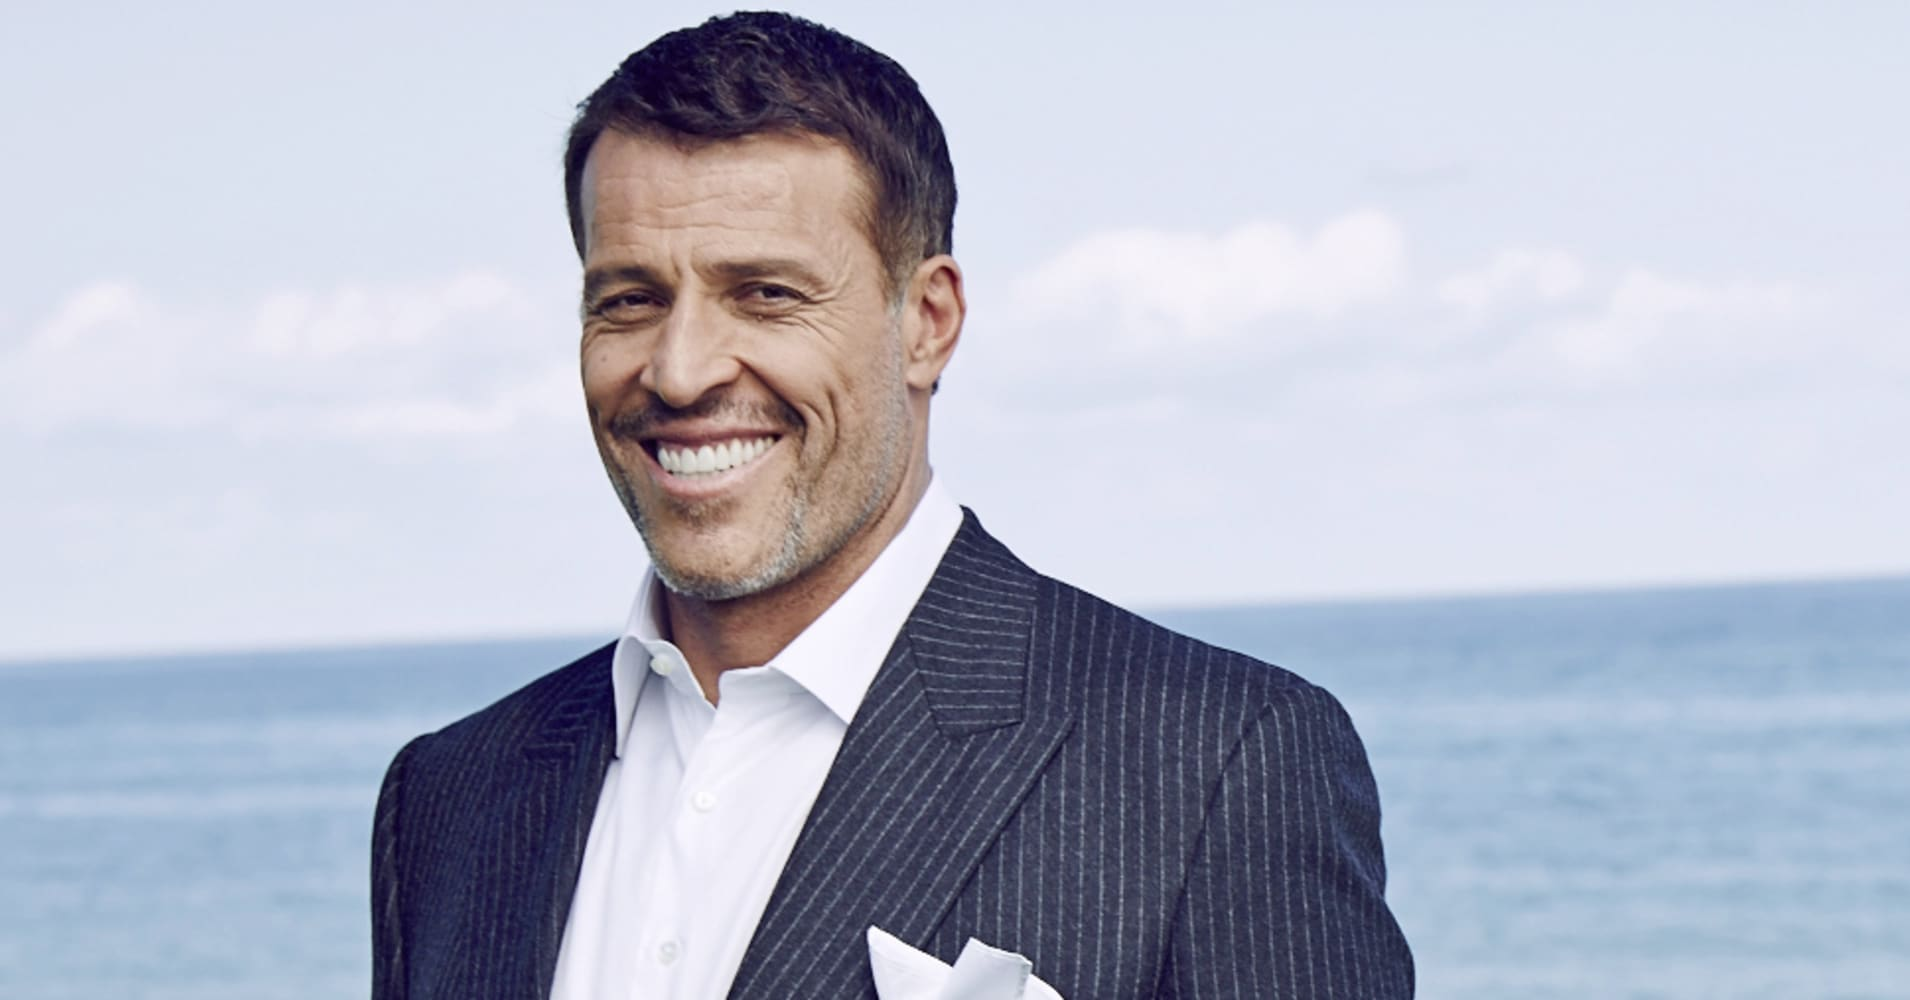 Self-made multi-millionaire Tony Robbins